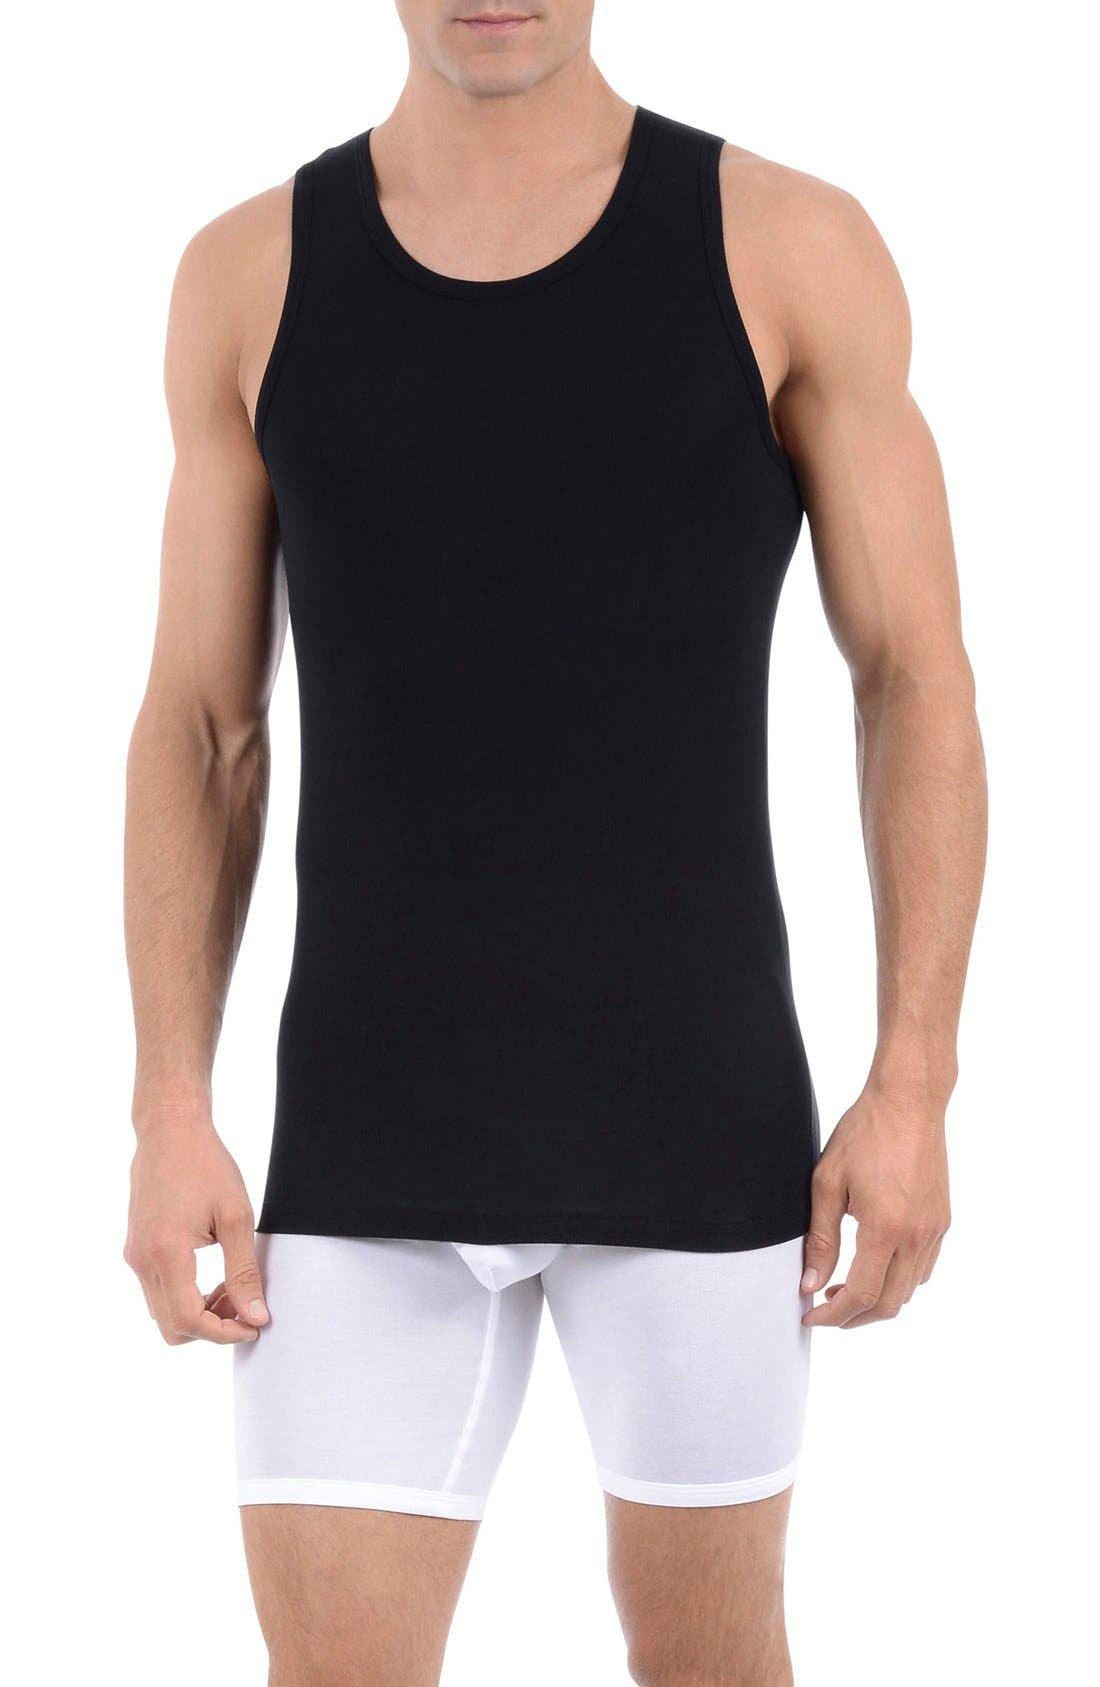 Alternate Image 1 Selected - Tommy John 'Second Skin' Tank Undershirt